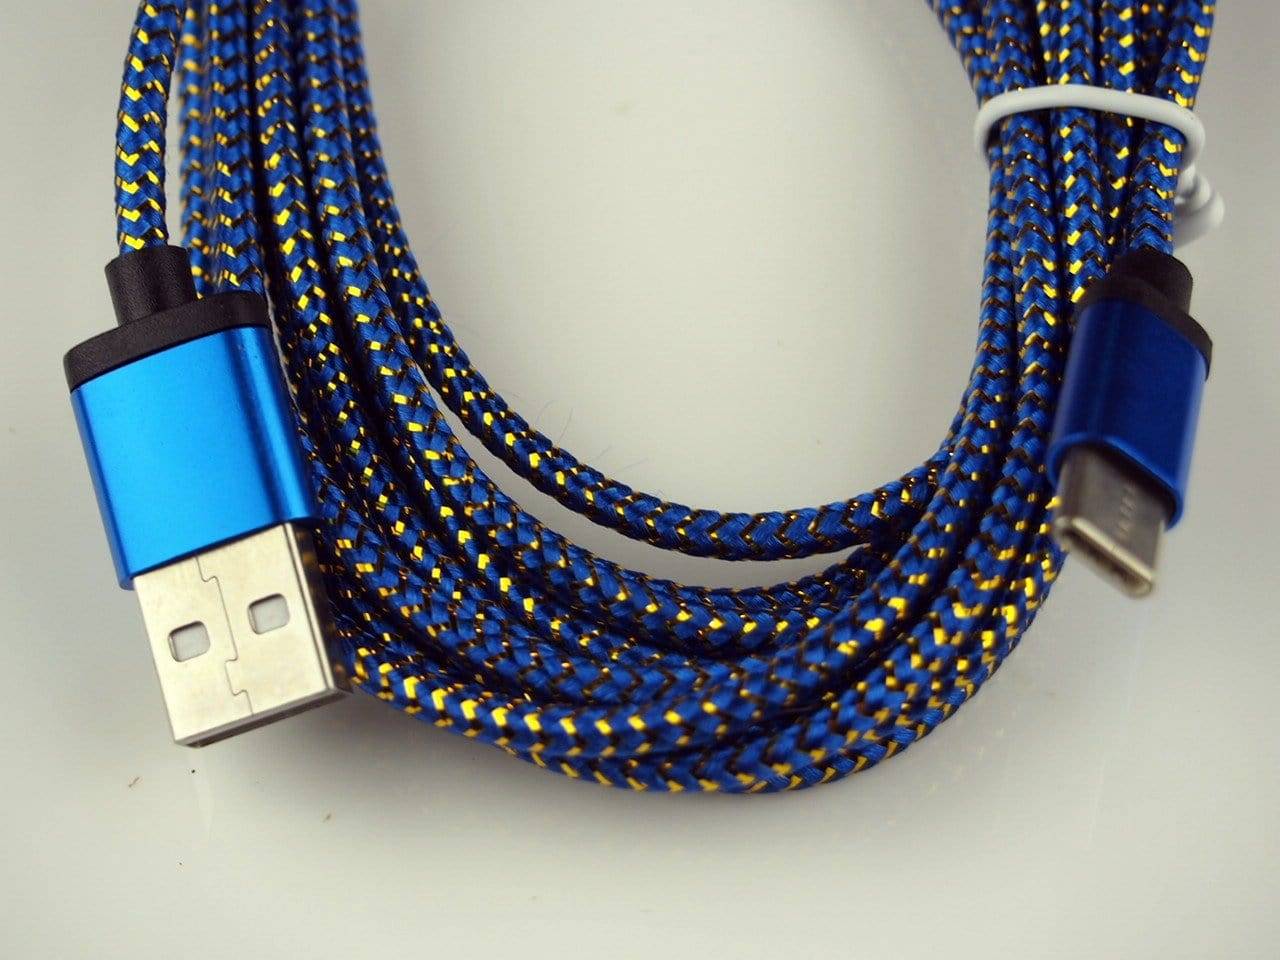 Charging Cable Type C, 9 ft. long | Type C Charging Cable Type C | Charging Cable